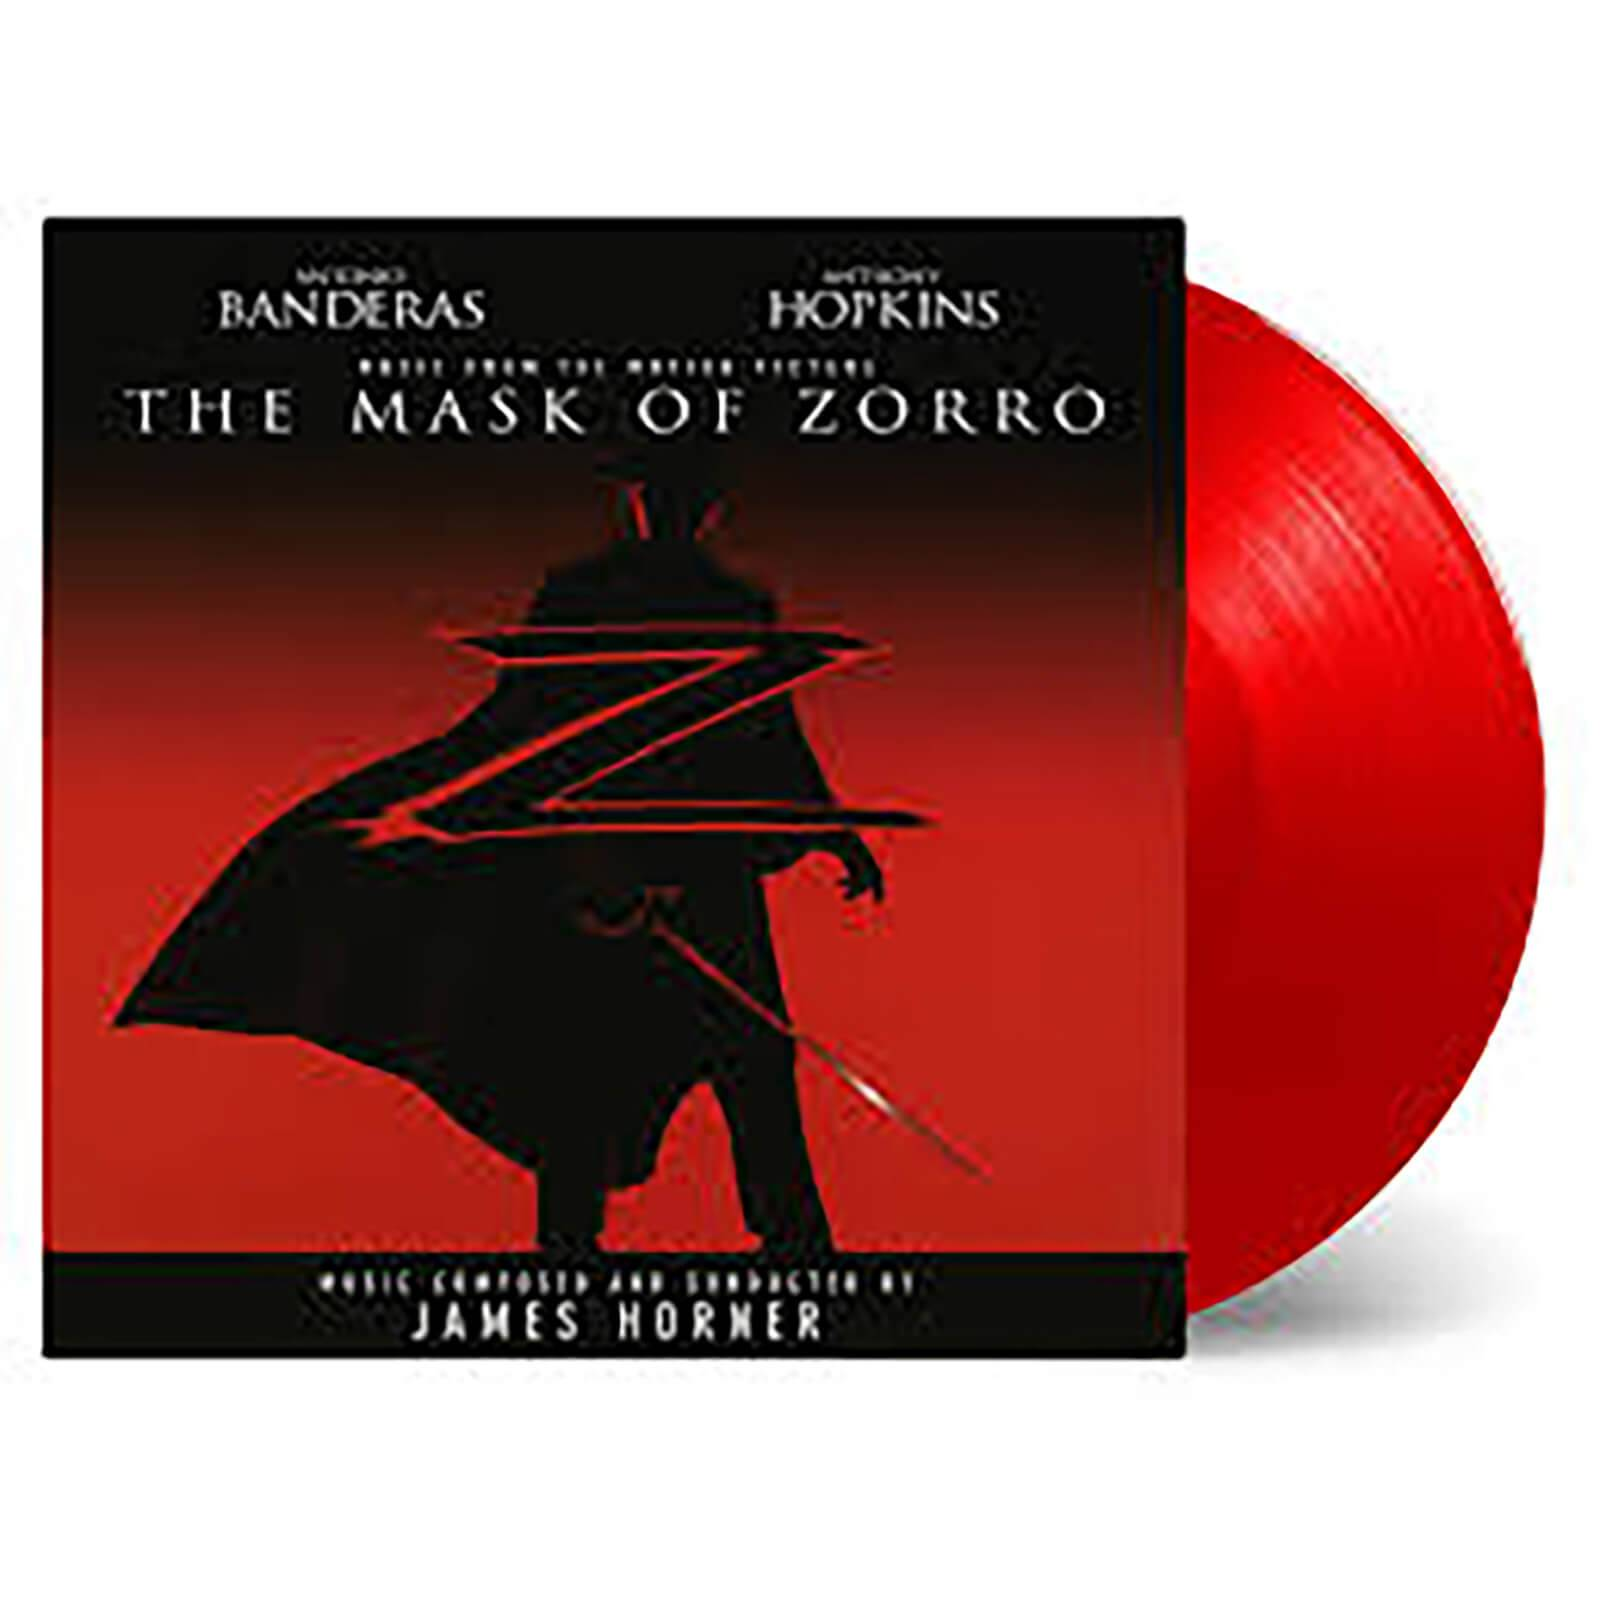 Music On Vinyl: At The Movies James Horner - Mask Of Zorro (Soundtrack) [2LP] (LIMITED RED 180 Gram Audiophile Vinyl, gatefold, first time on vinyl, PVC sleeve, numbered to 750)